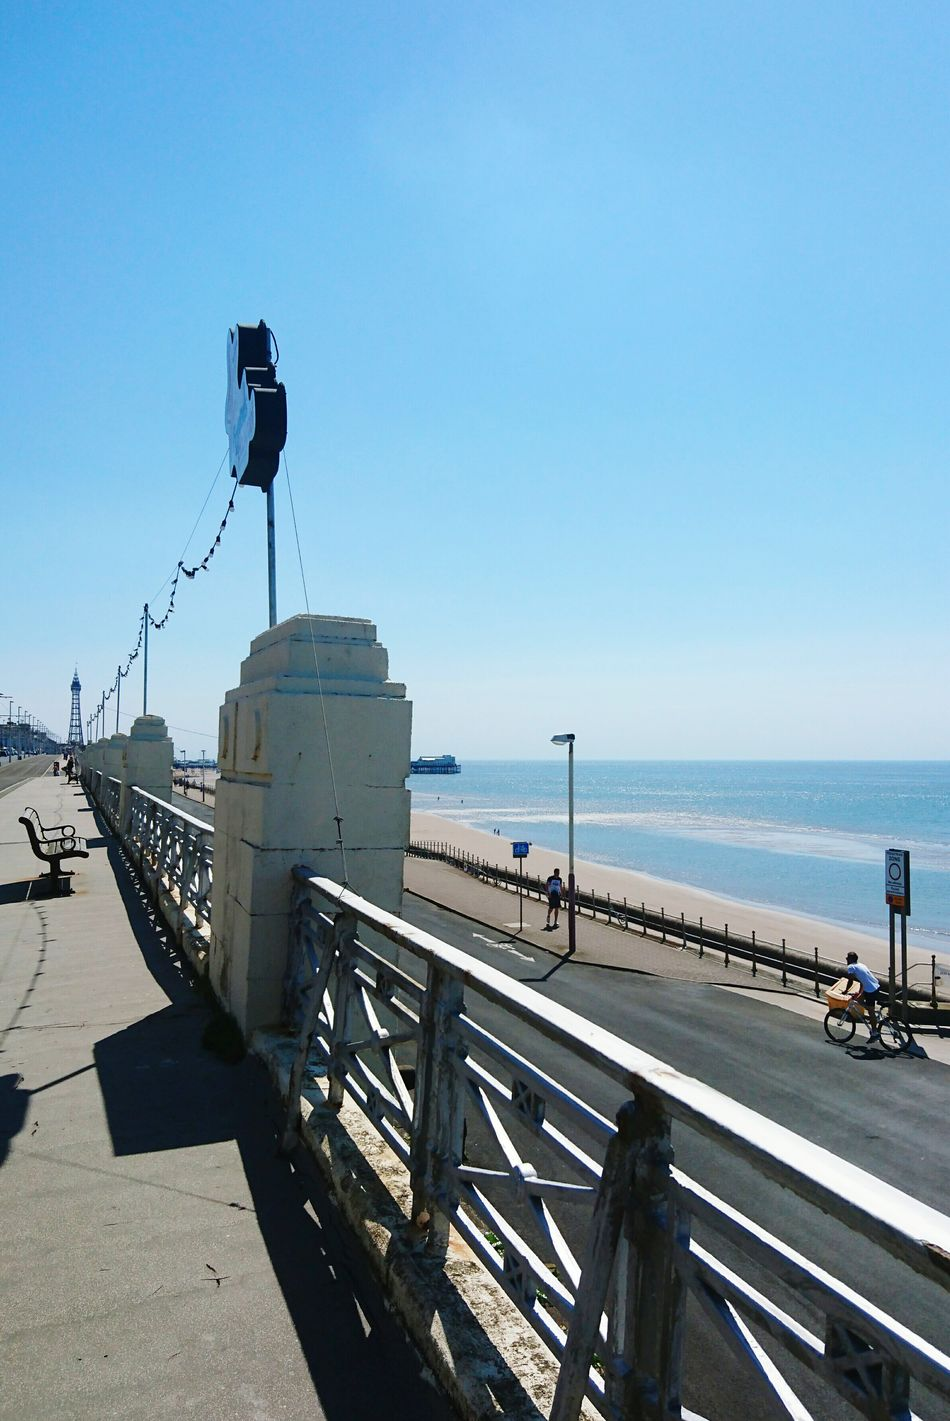 Sea Clear Sky Water Blue Tourism Outdoors Tranquility Holiday Day Out Promenade Seafront Away From It All Resort Going For A Walk Strolling Around Walking Around Check This Out Taking Photos Hello World